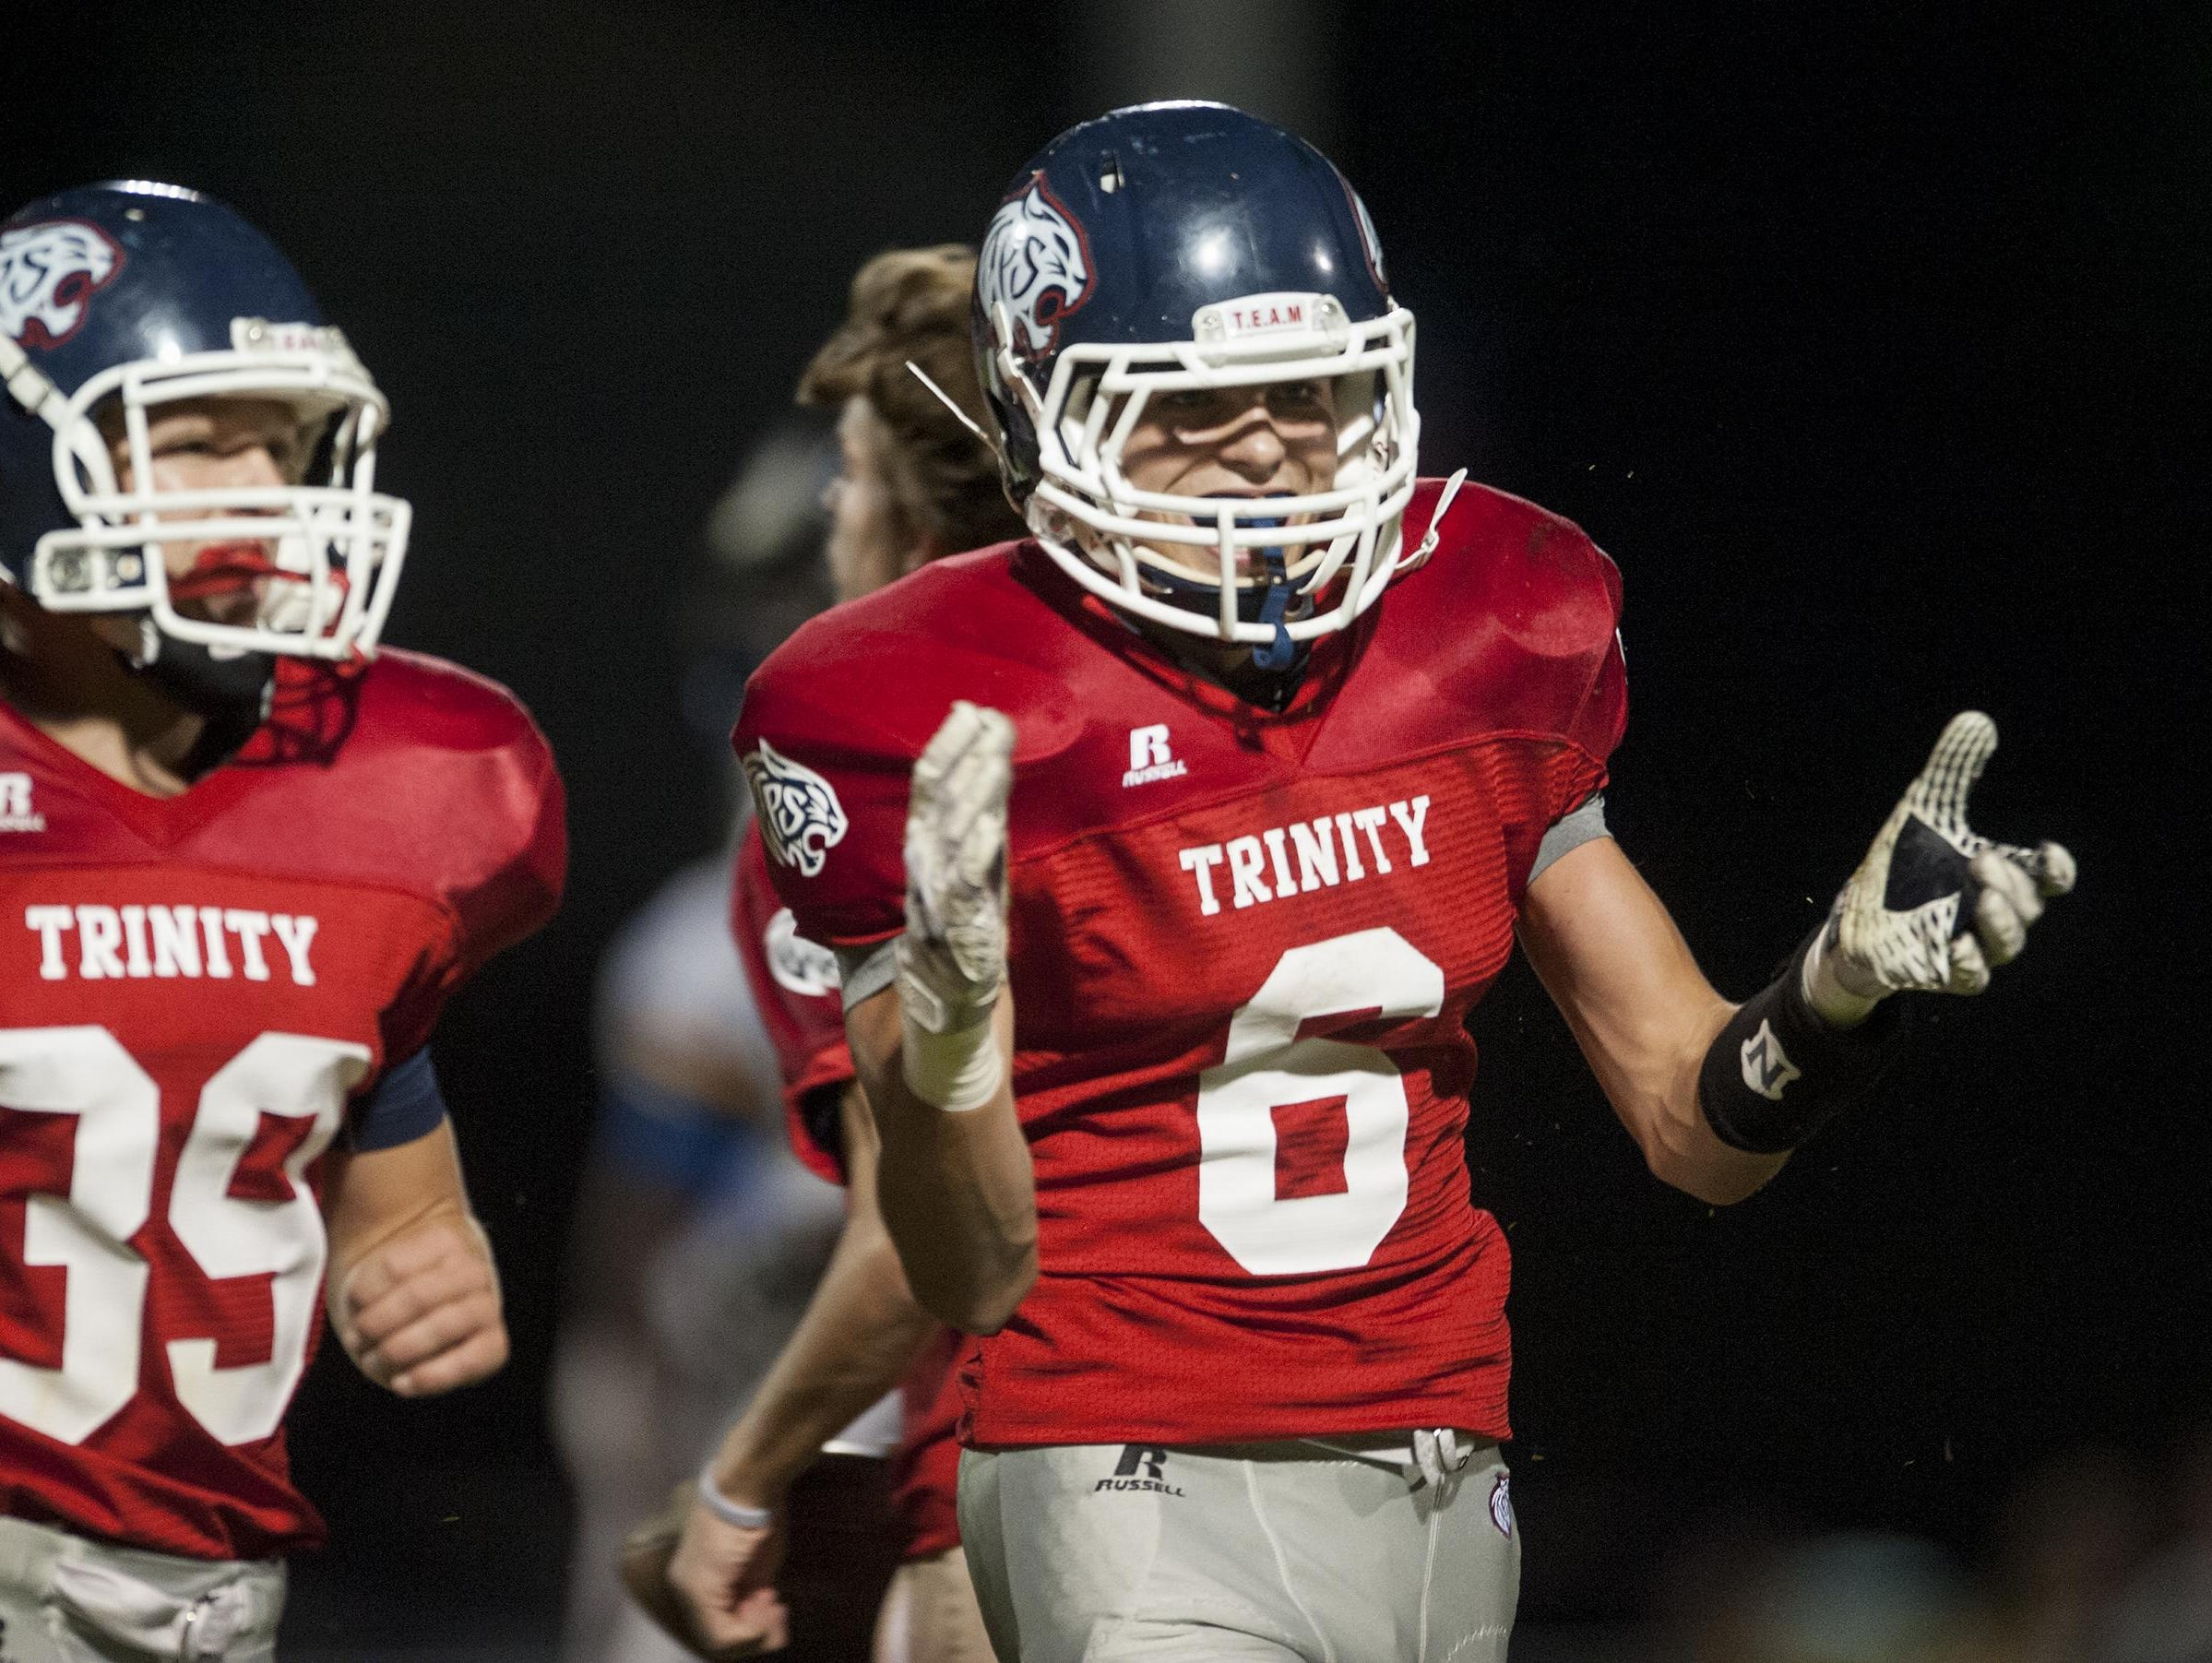 Trinity's Luke Hufham and the Wildcats host Northside in a high school football playoff game on Friday. Trinity's Luke Hufham (6) celebrates intercepting a pass against Catholic at the Trinity campus in Montgomery, Ala. on Thursday October 9, 2015.